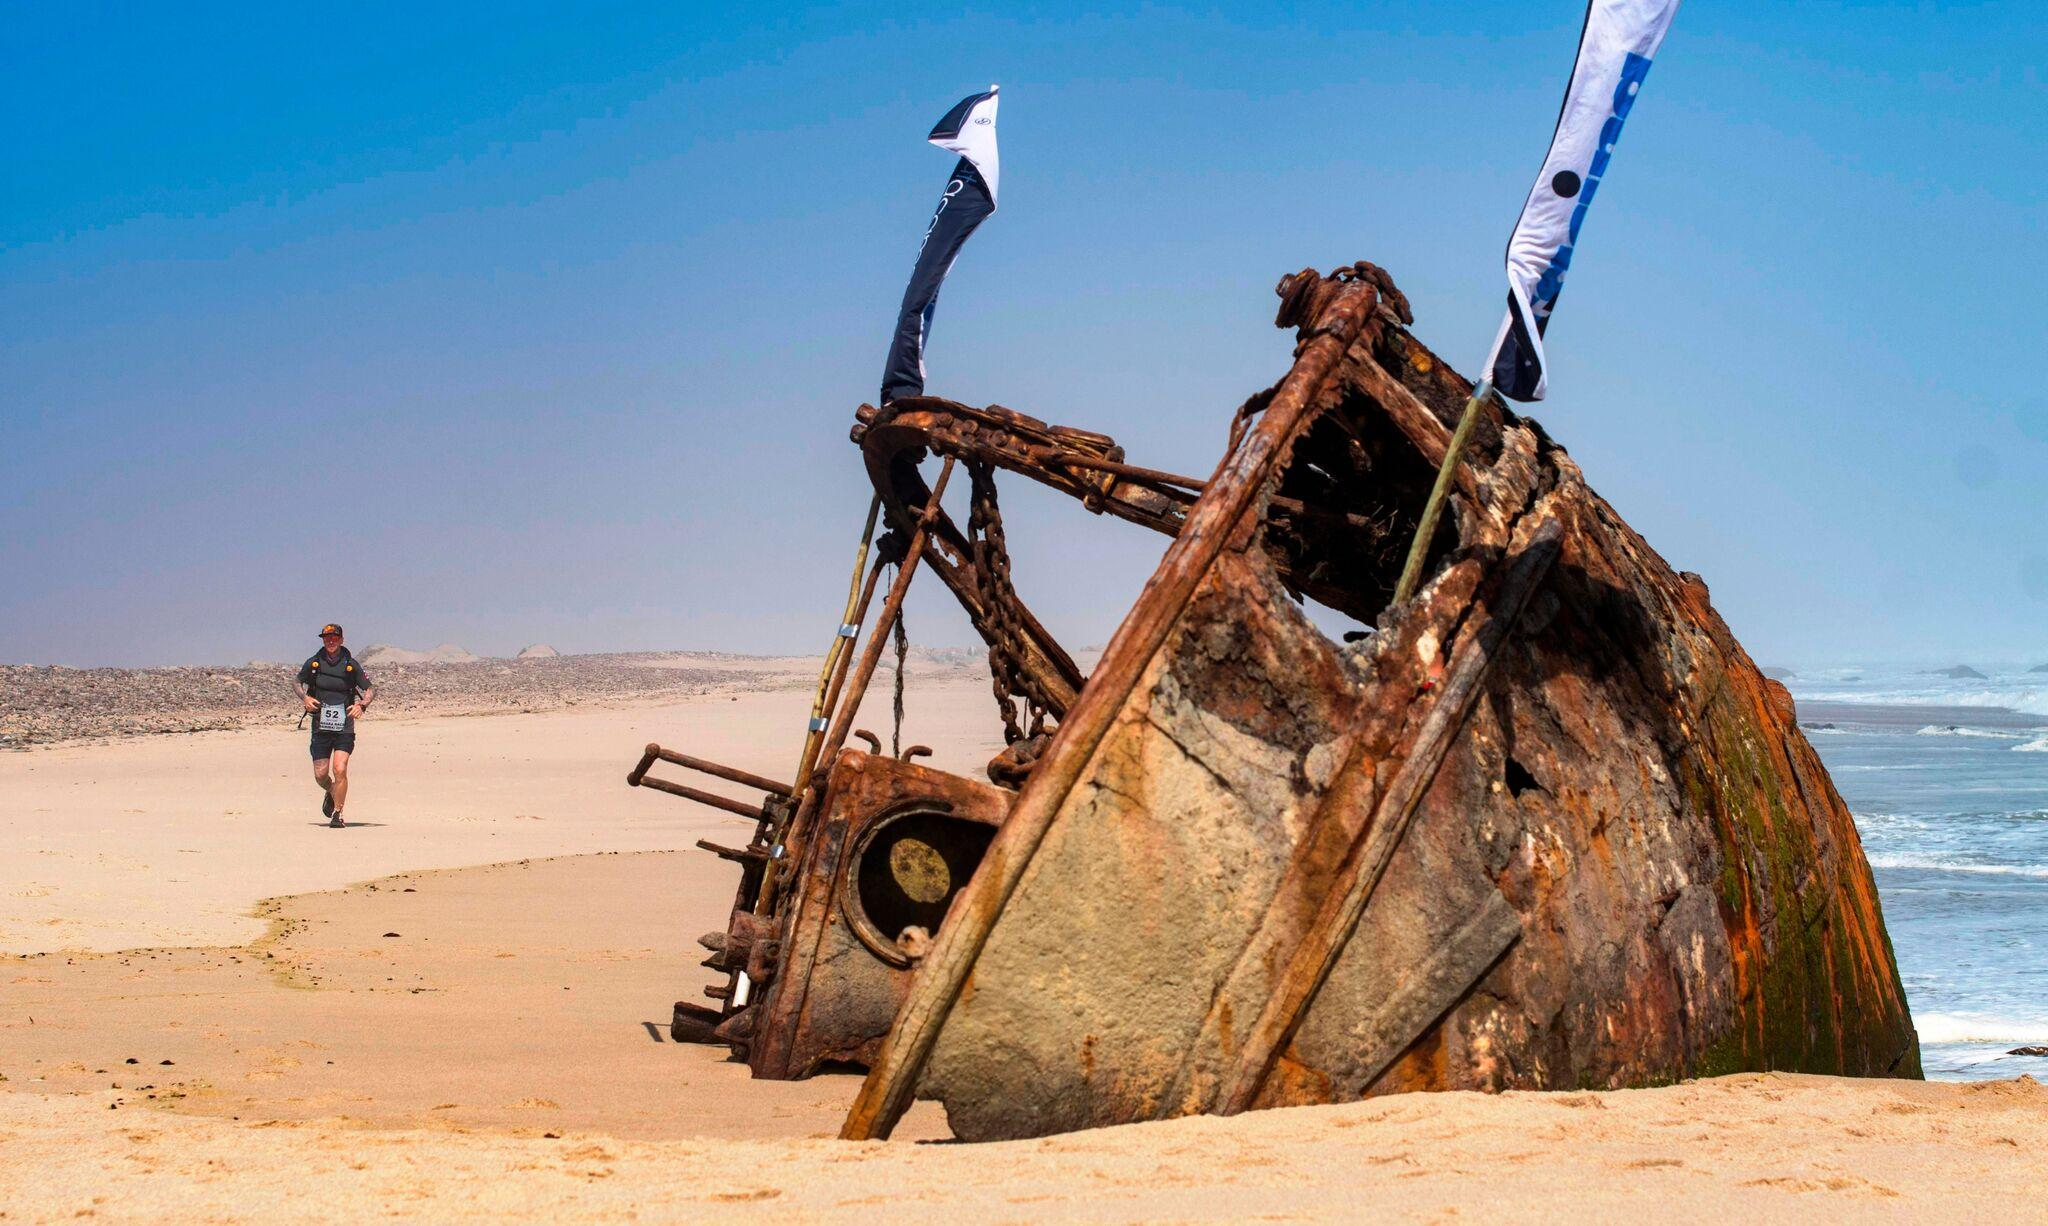 An old shipwreck seen during 'Beach day' running